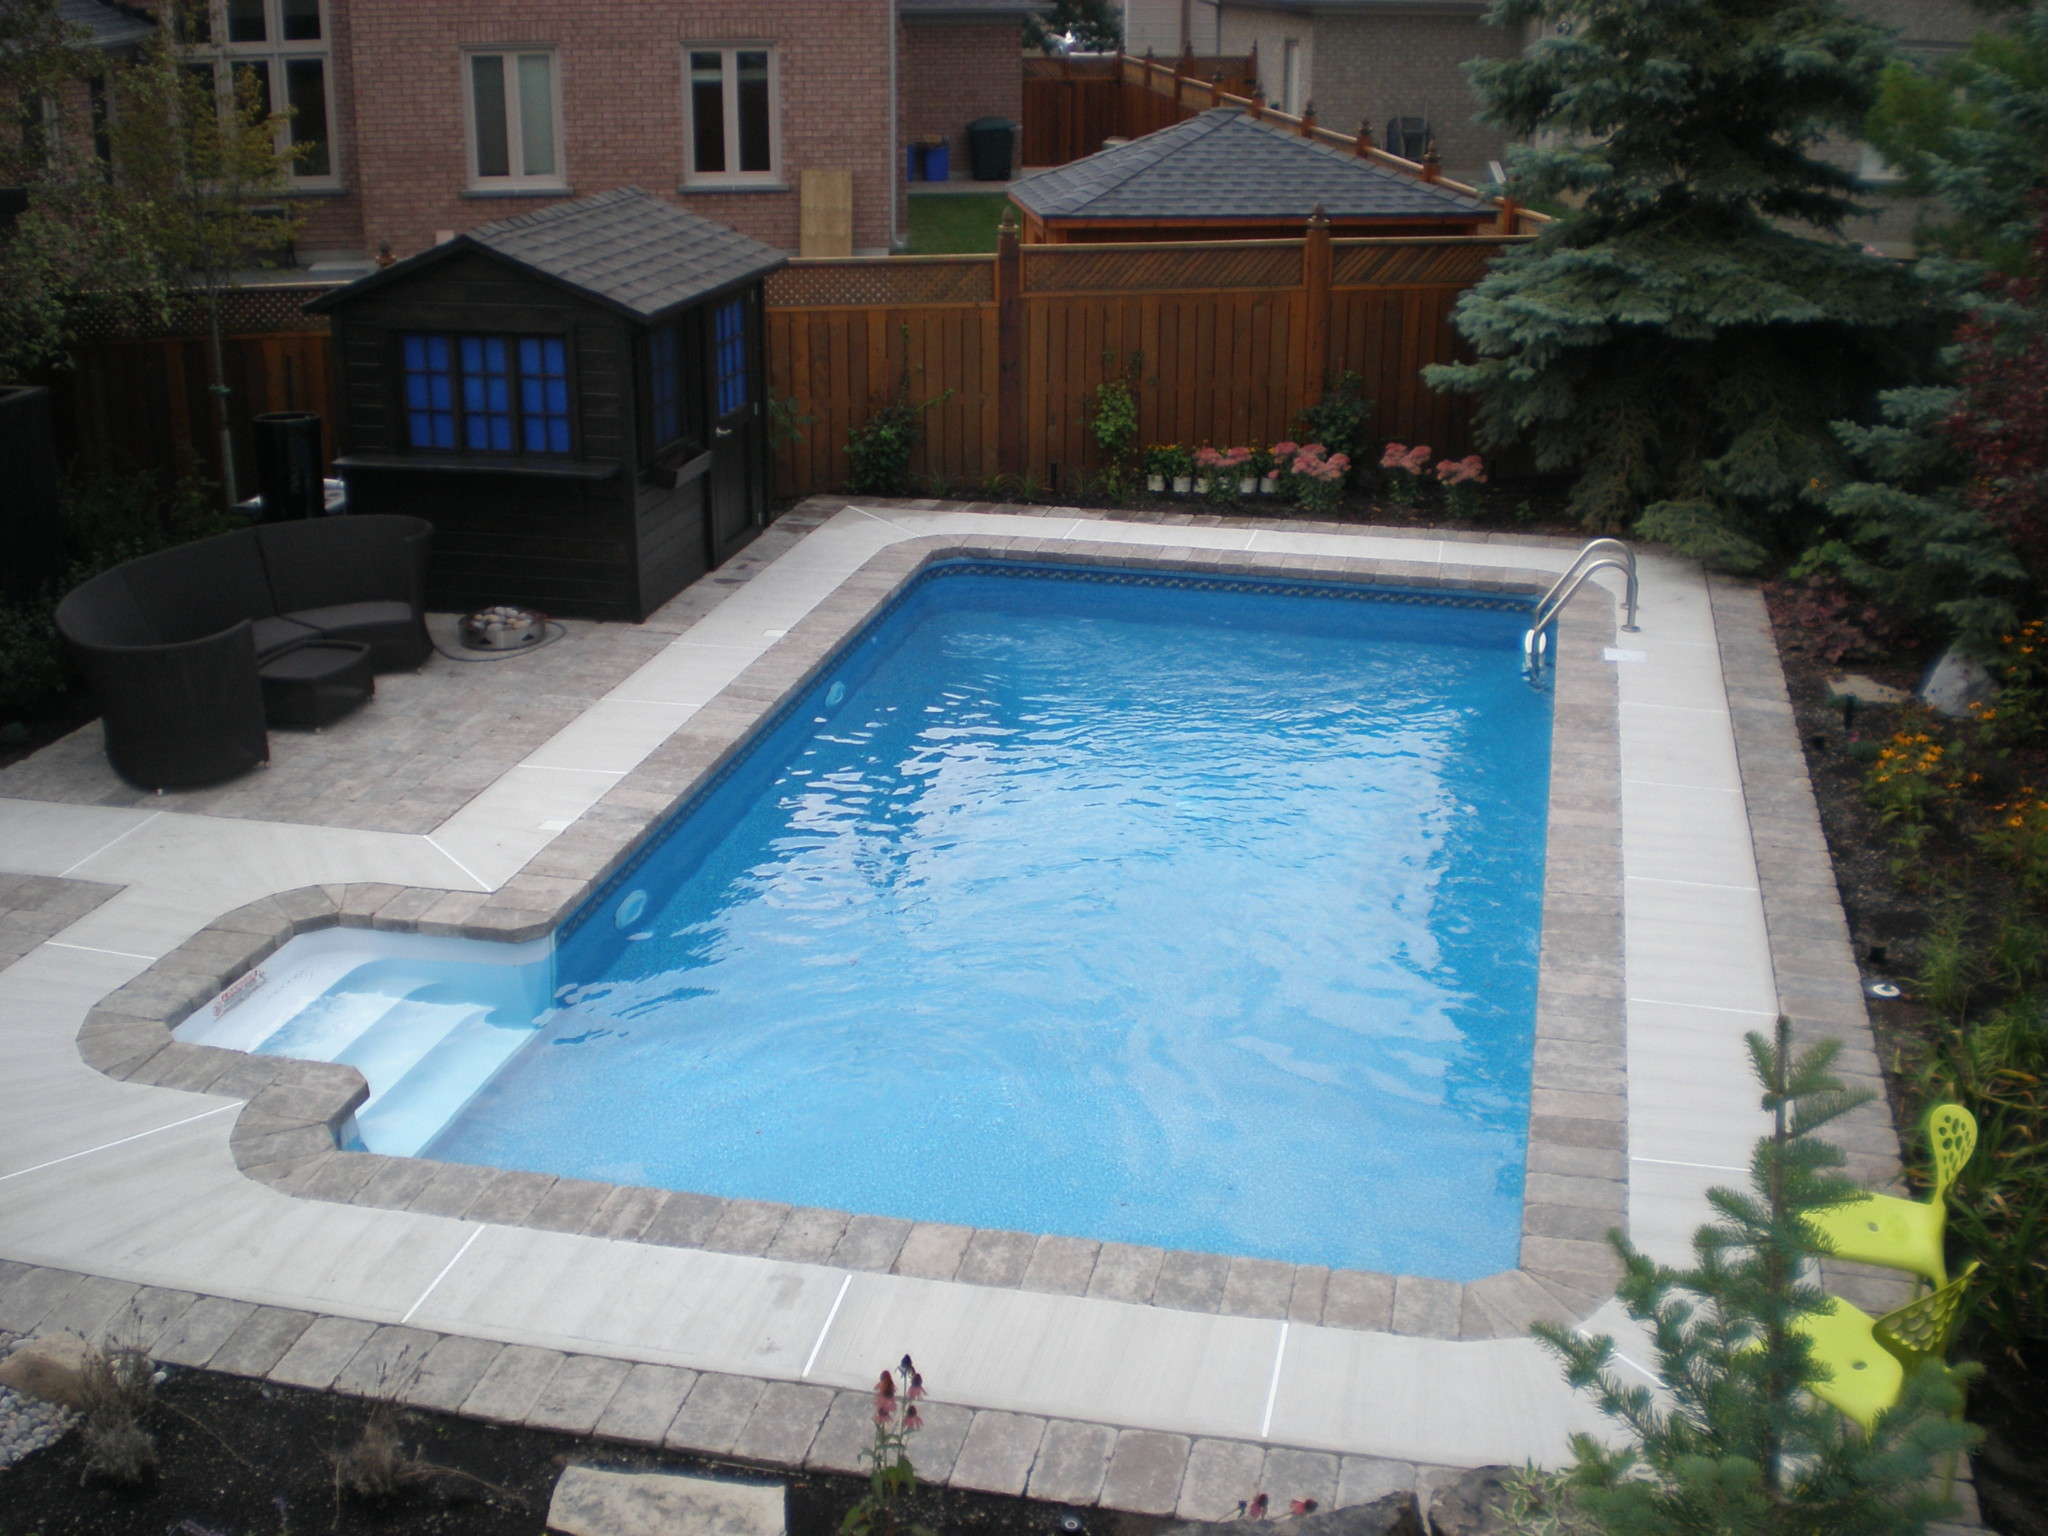 TITAN Steel Wall In-Ground Pool Kits from $5,999.99 ...